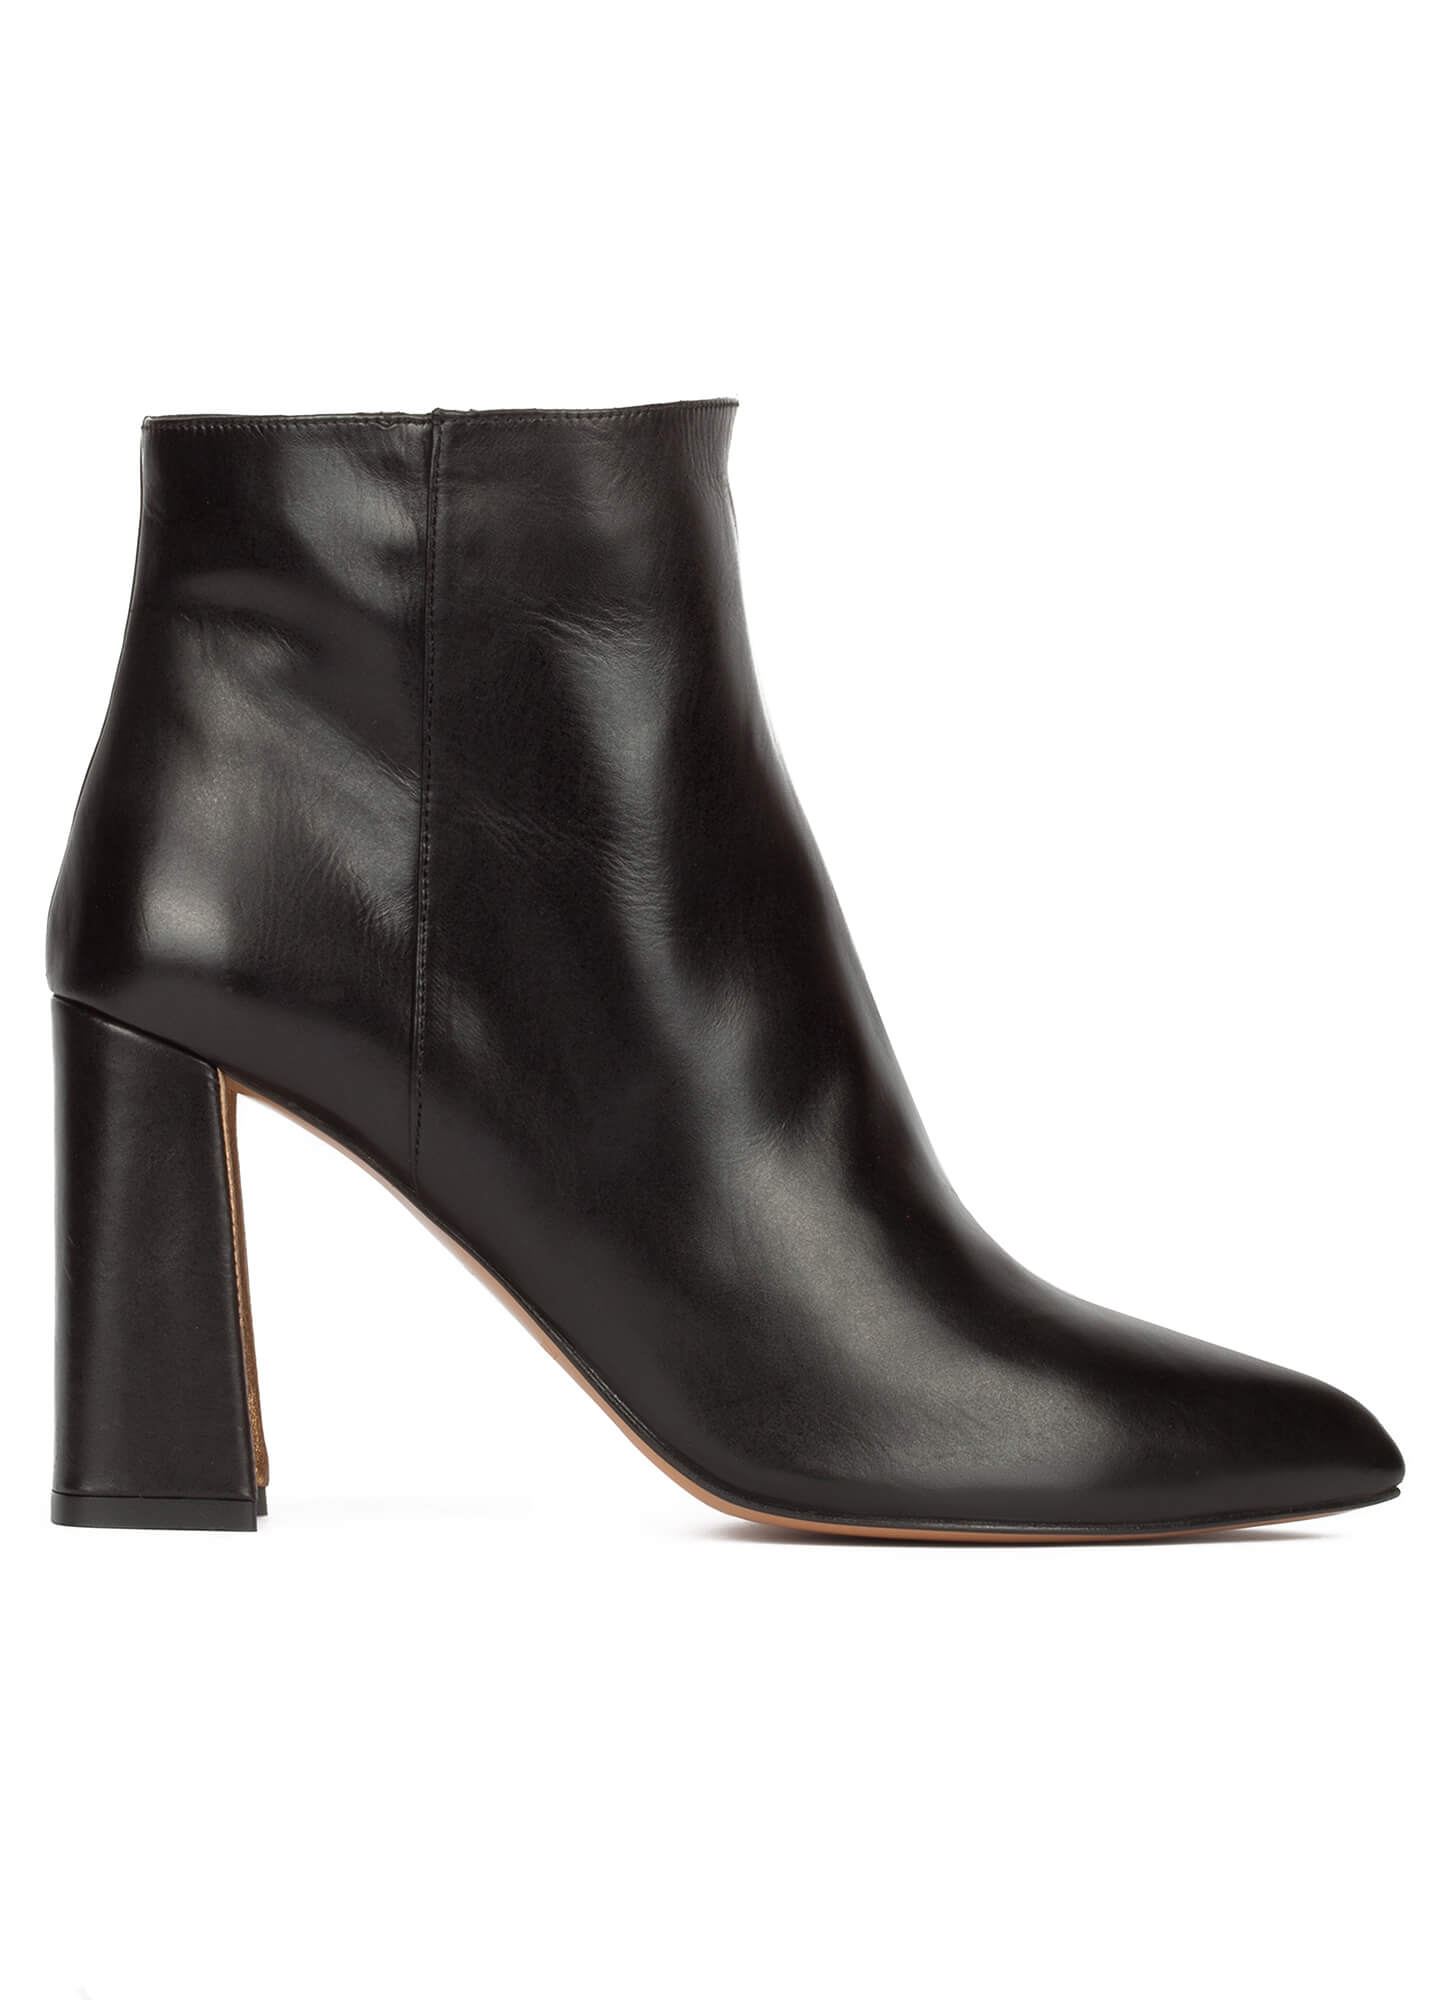 Black leather high block heel ankle boots . PURA LOPEZ